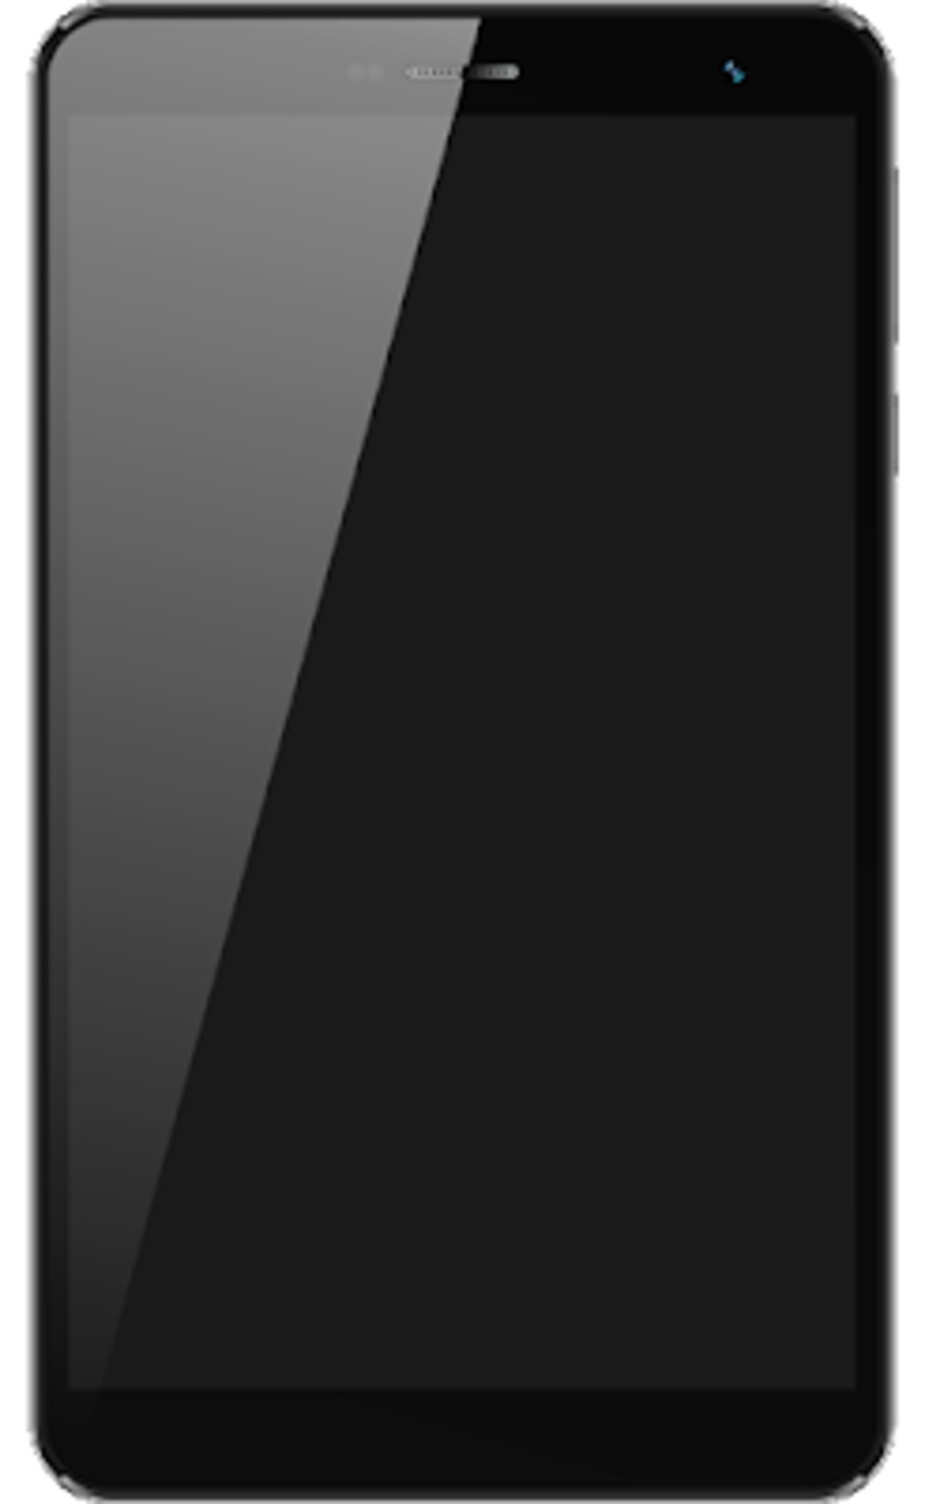 HTC Wildfire X - HTC Wildfire X partial specs leaked via Google